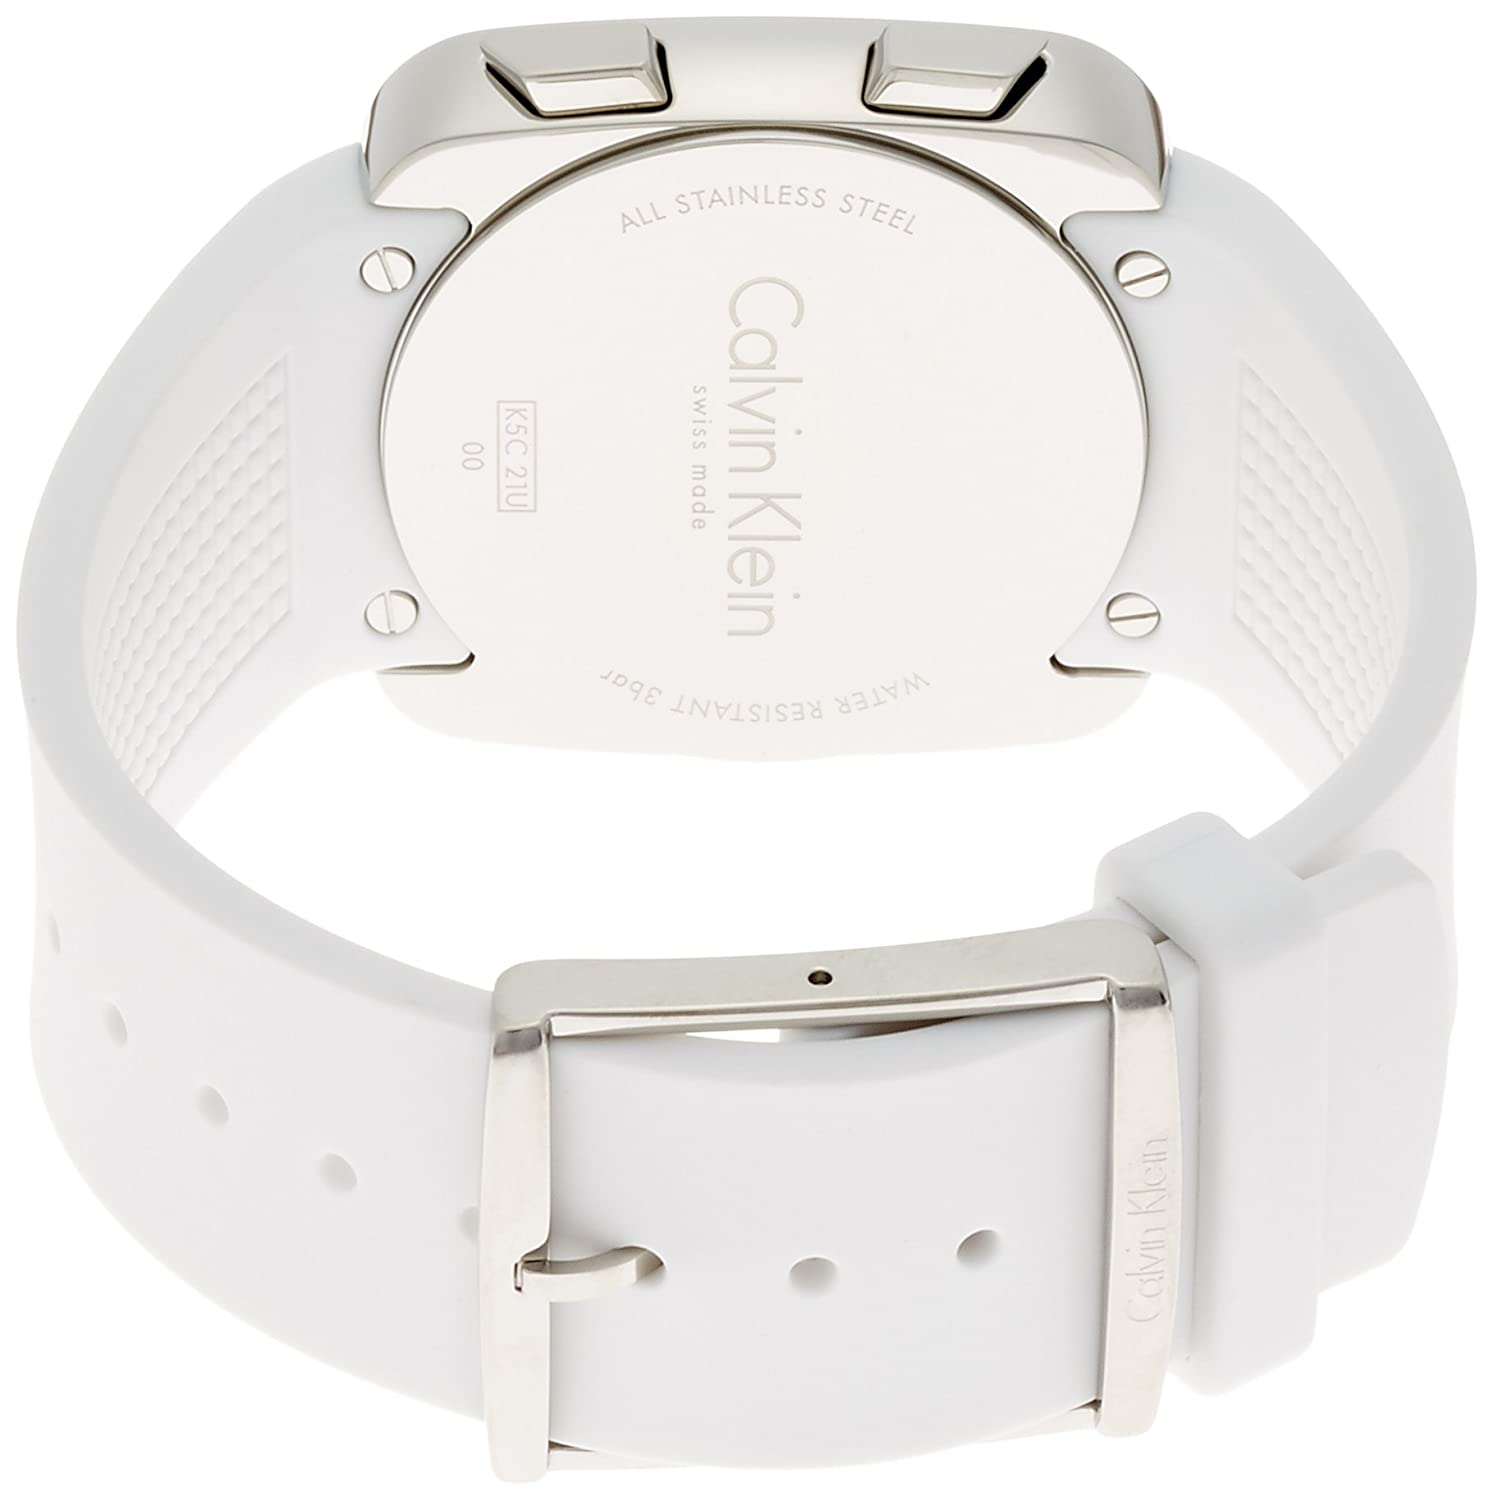 Amazon.com: Calvin Klein Womens Digital Watch with Silicone Strap K5C21UM6: Watches